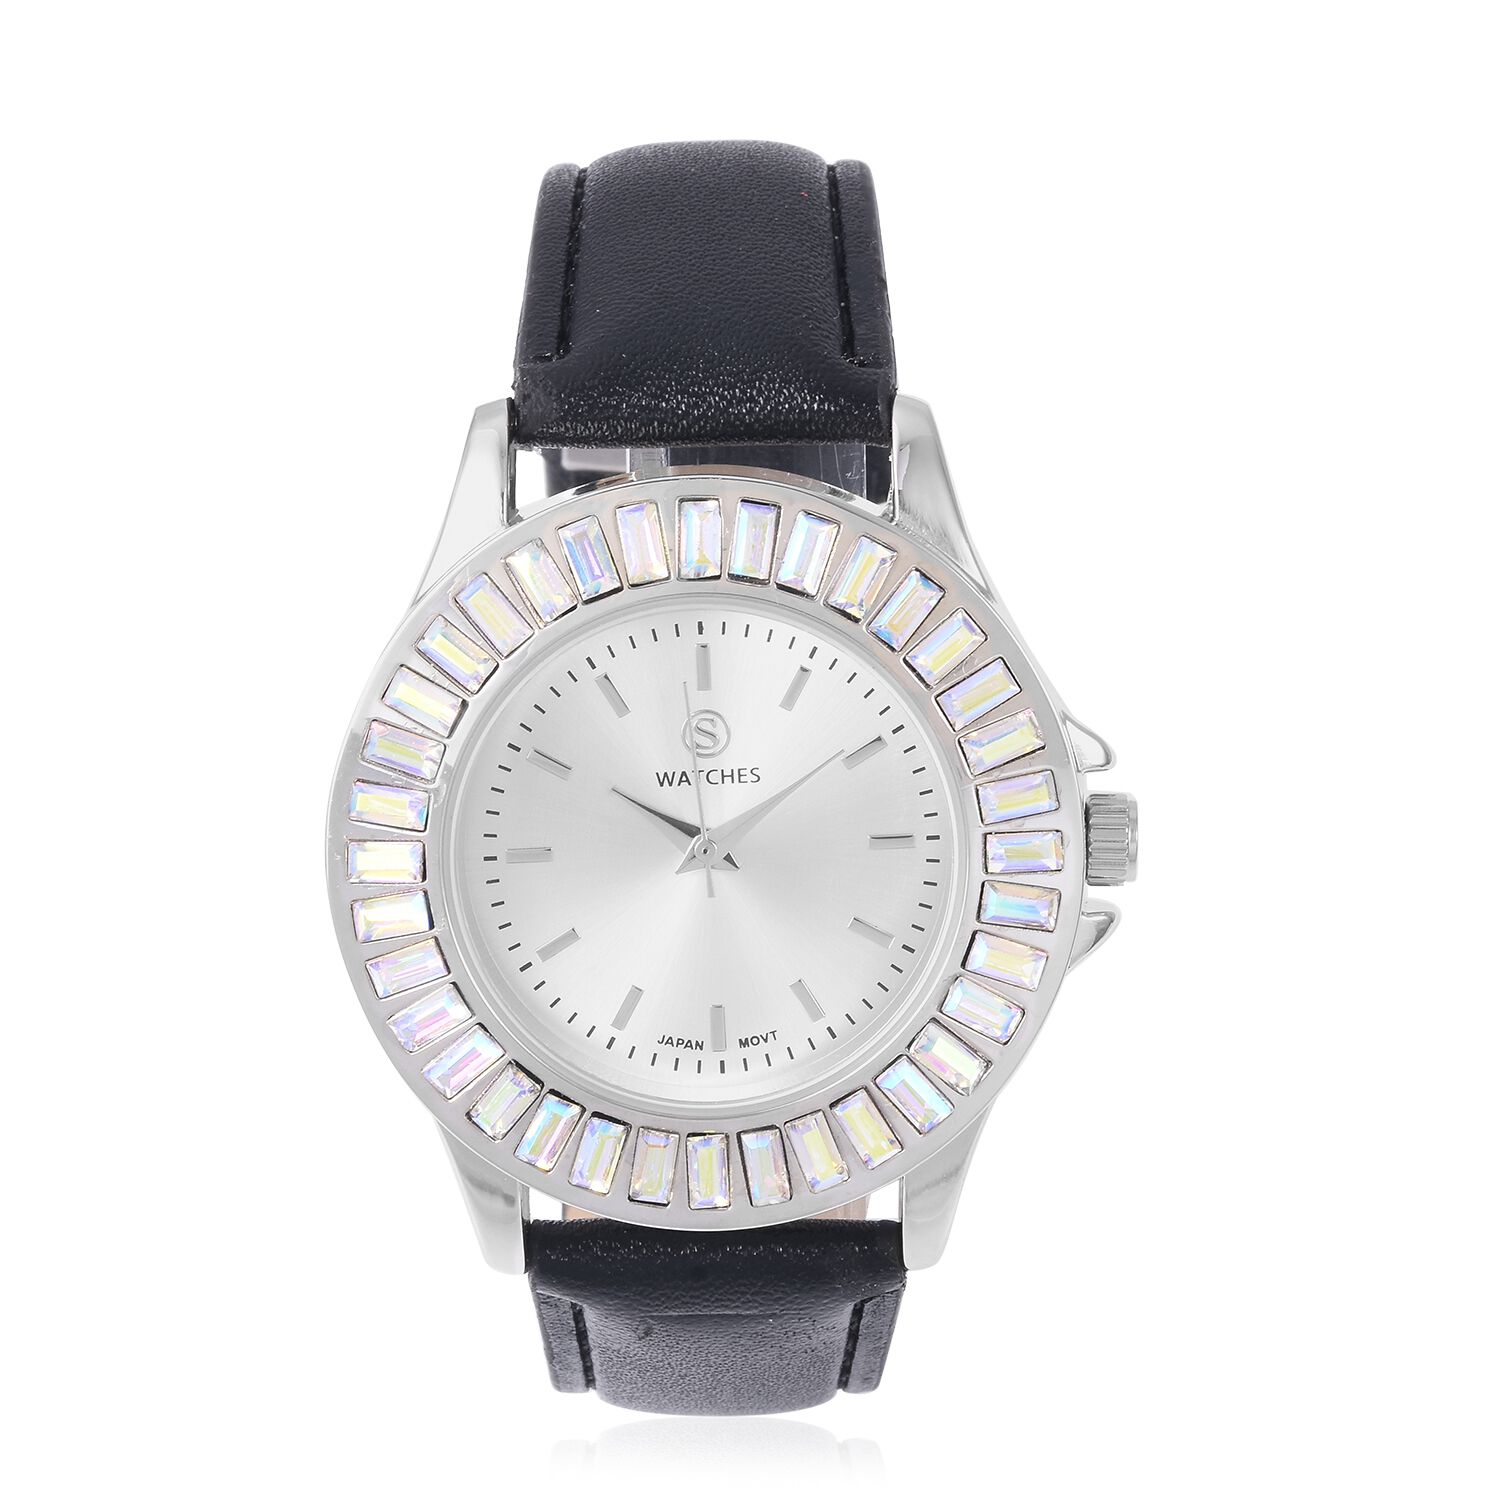 2 Piece Set STRADA Japanese Movement Water Resistant Simulated Mercury Mystic Topaz Studded Watch with Black Strap and Necklace Size 24 3297469